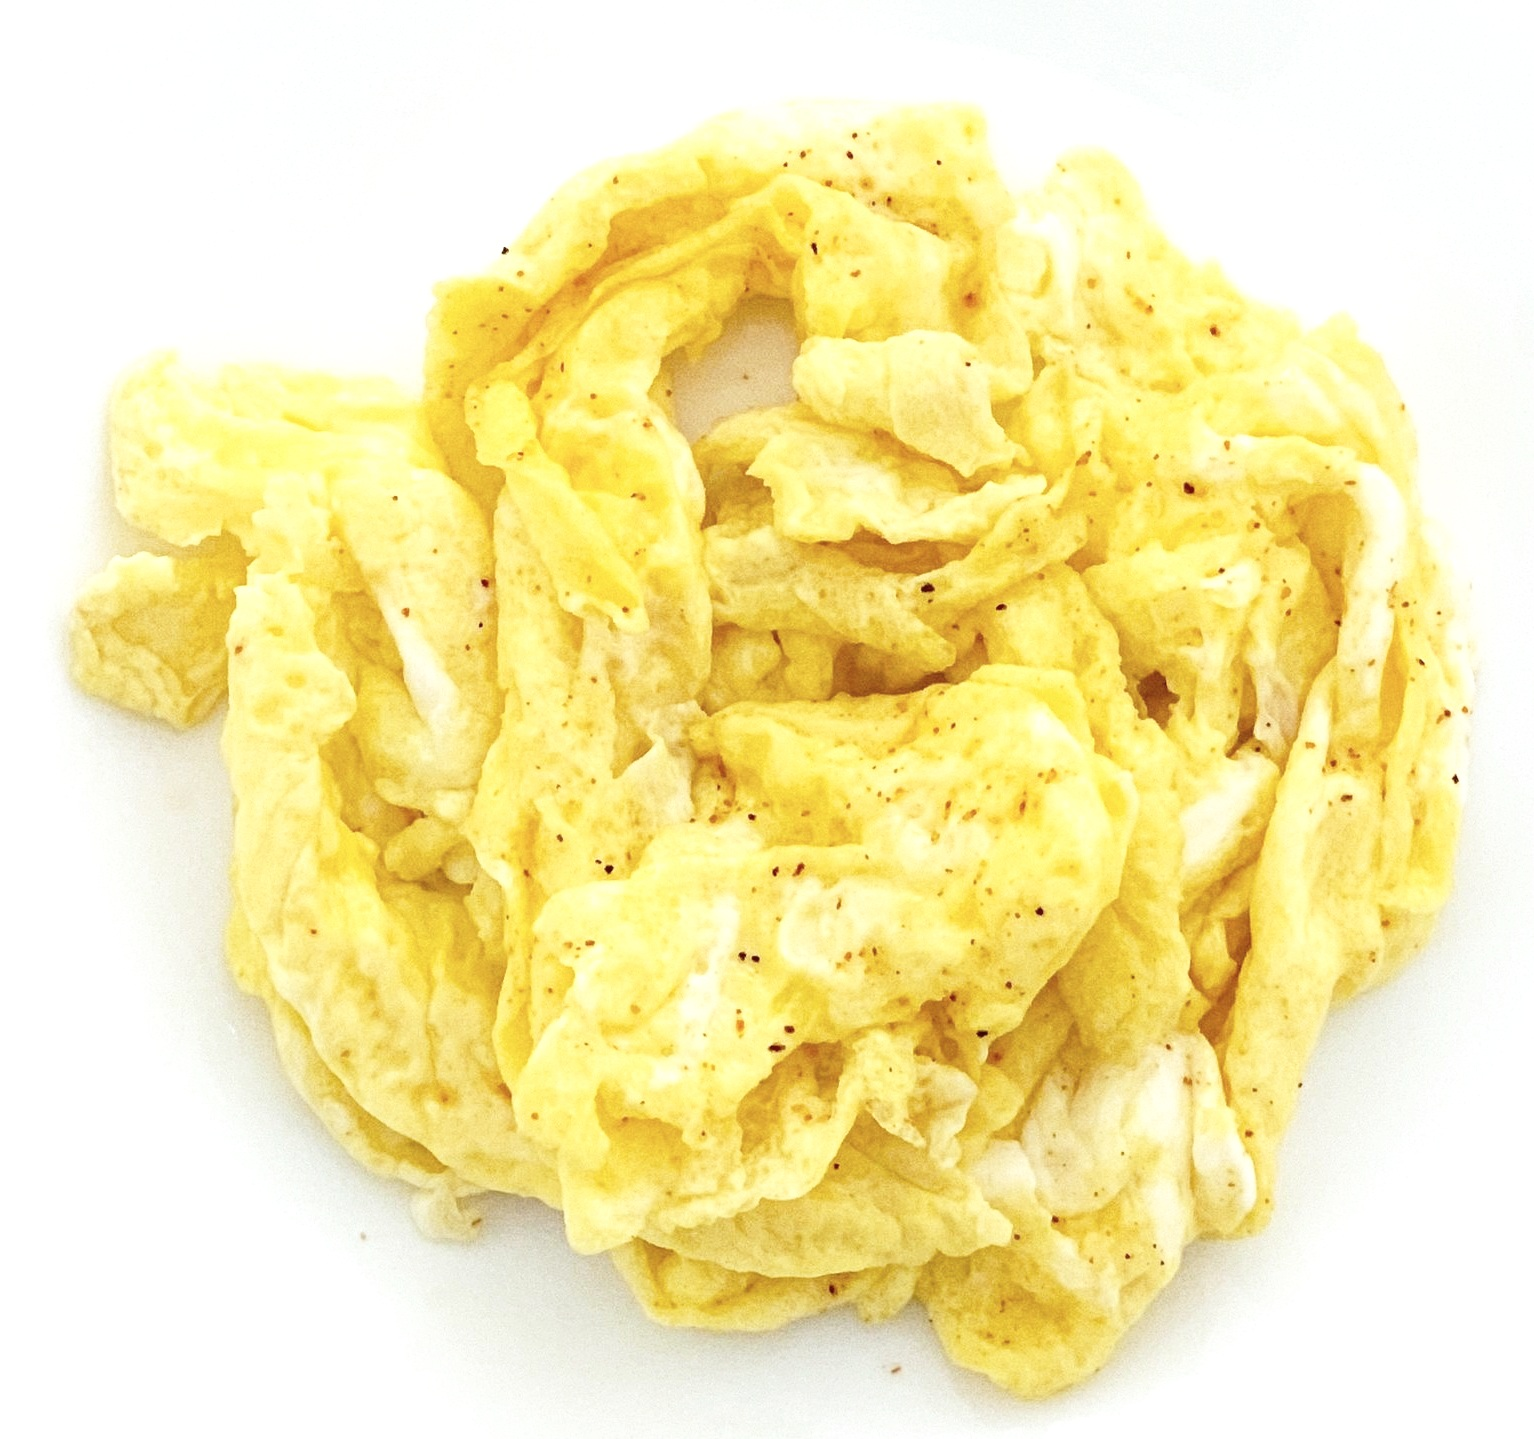 2 Jasmine C. Tate. jasminectate.com. Country Crock. Plant Butter. Olive Oil. Scrambled Eggs. Product Review.JPG